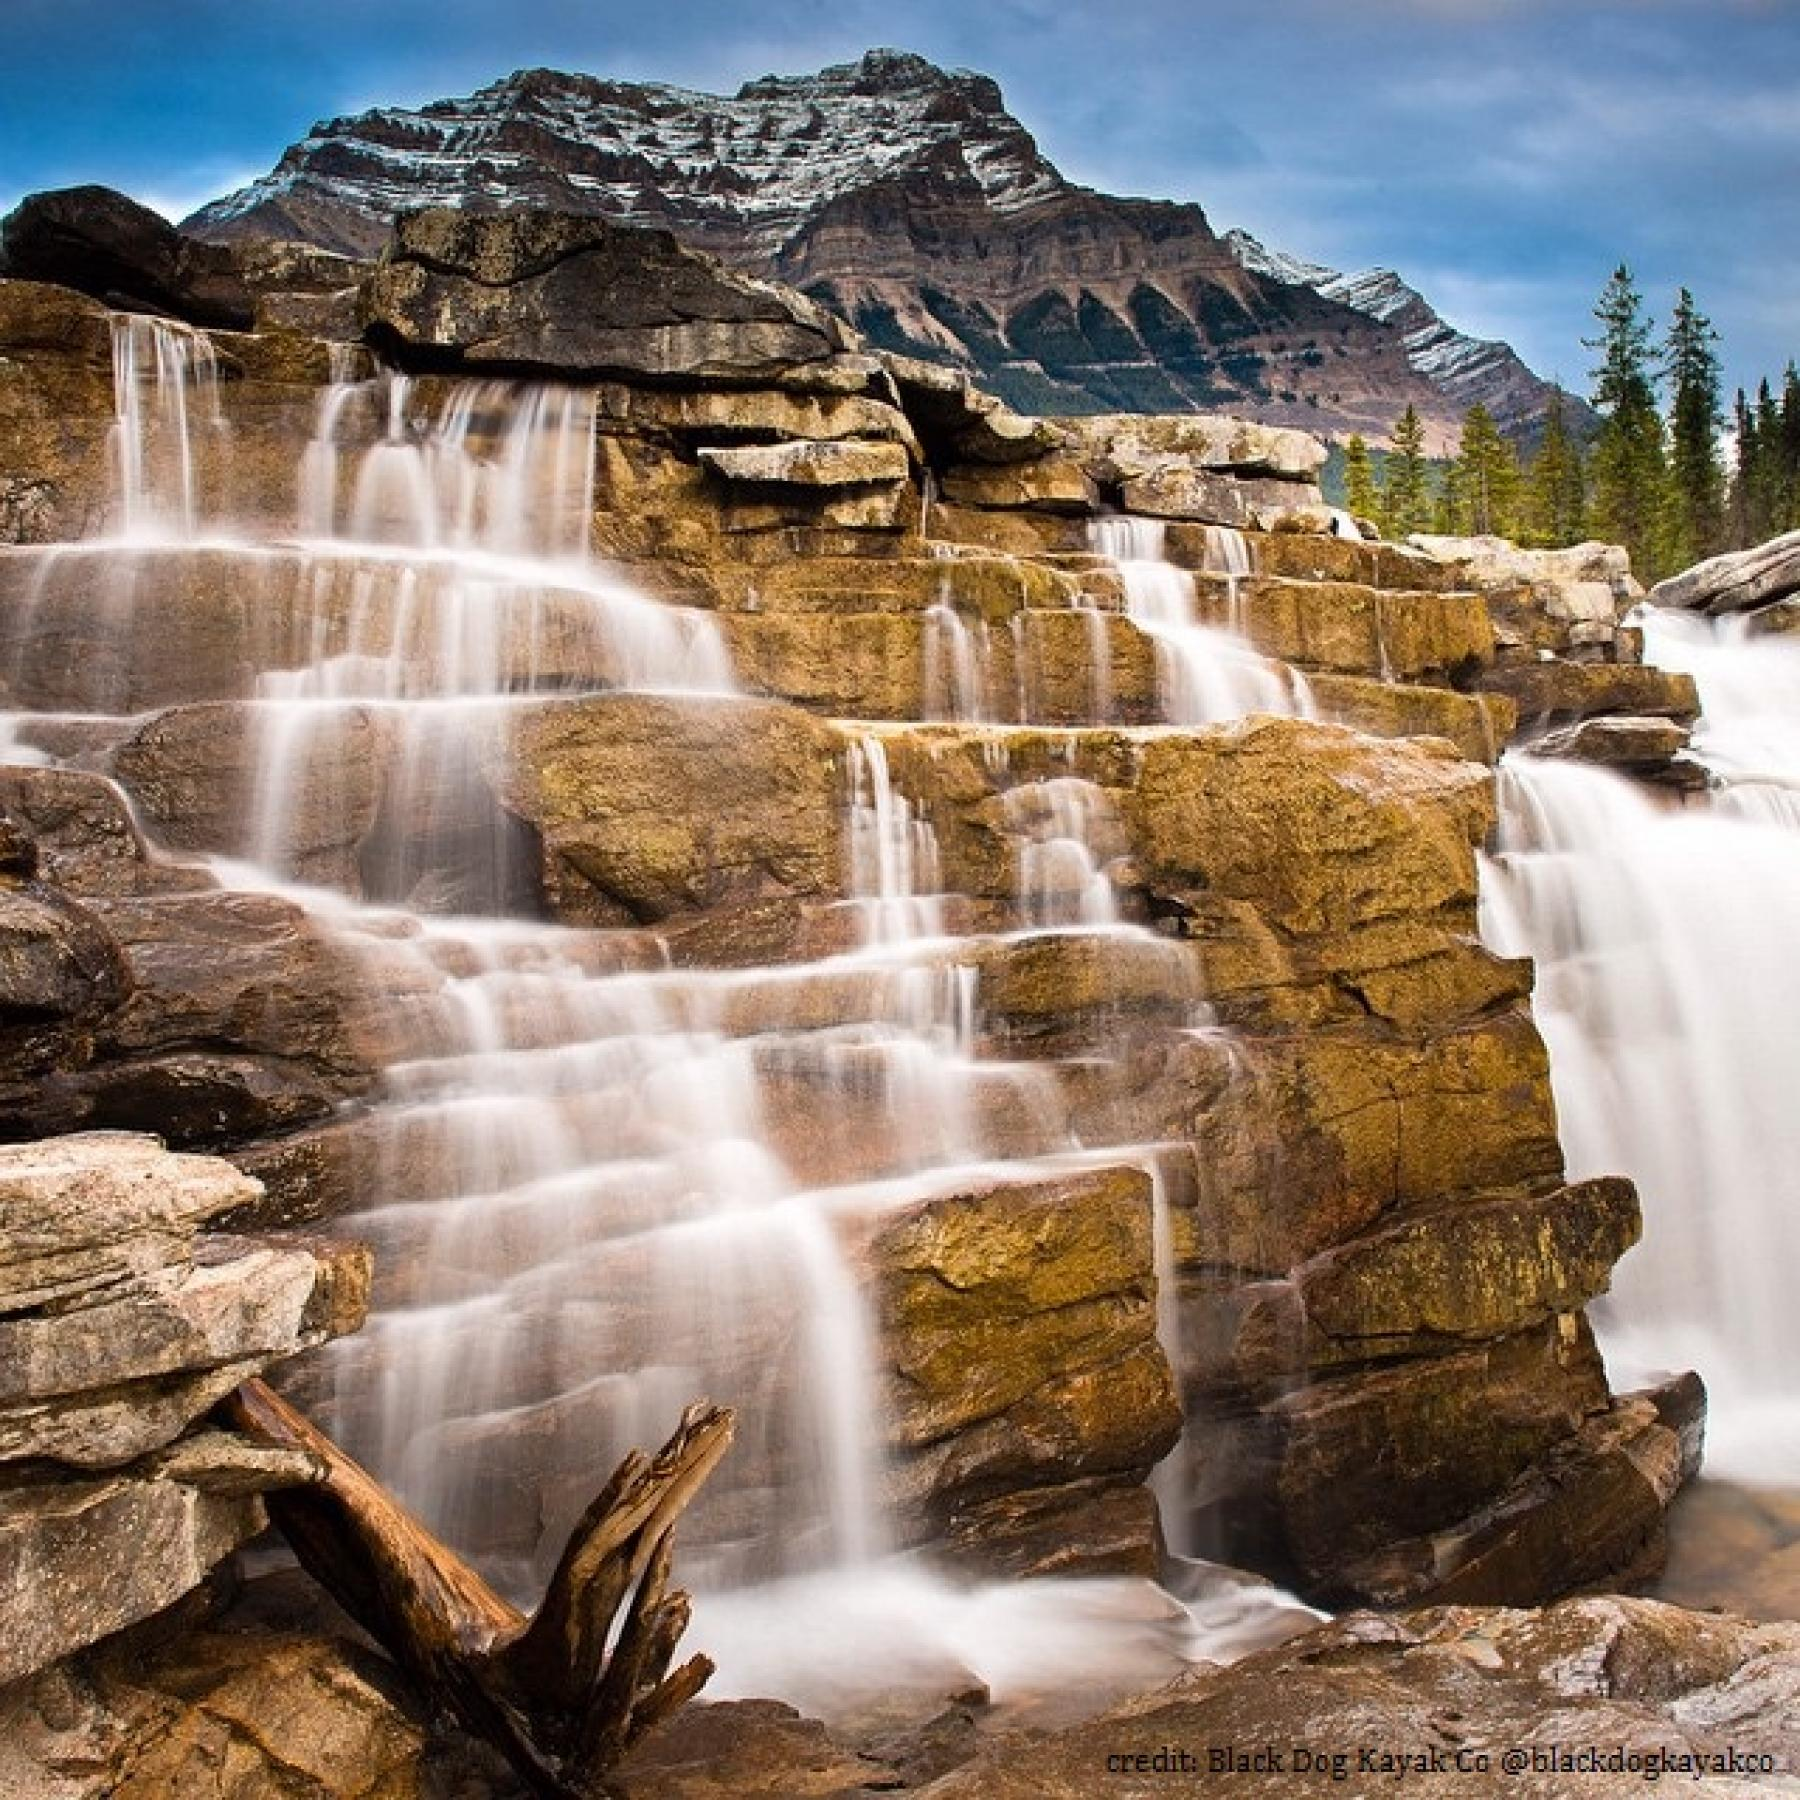 Epic Canadian Rockies Adventure starting at Canadian Rockies